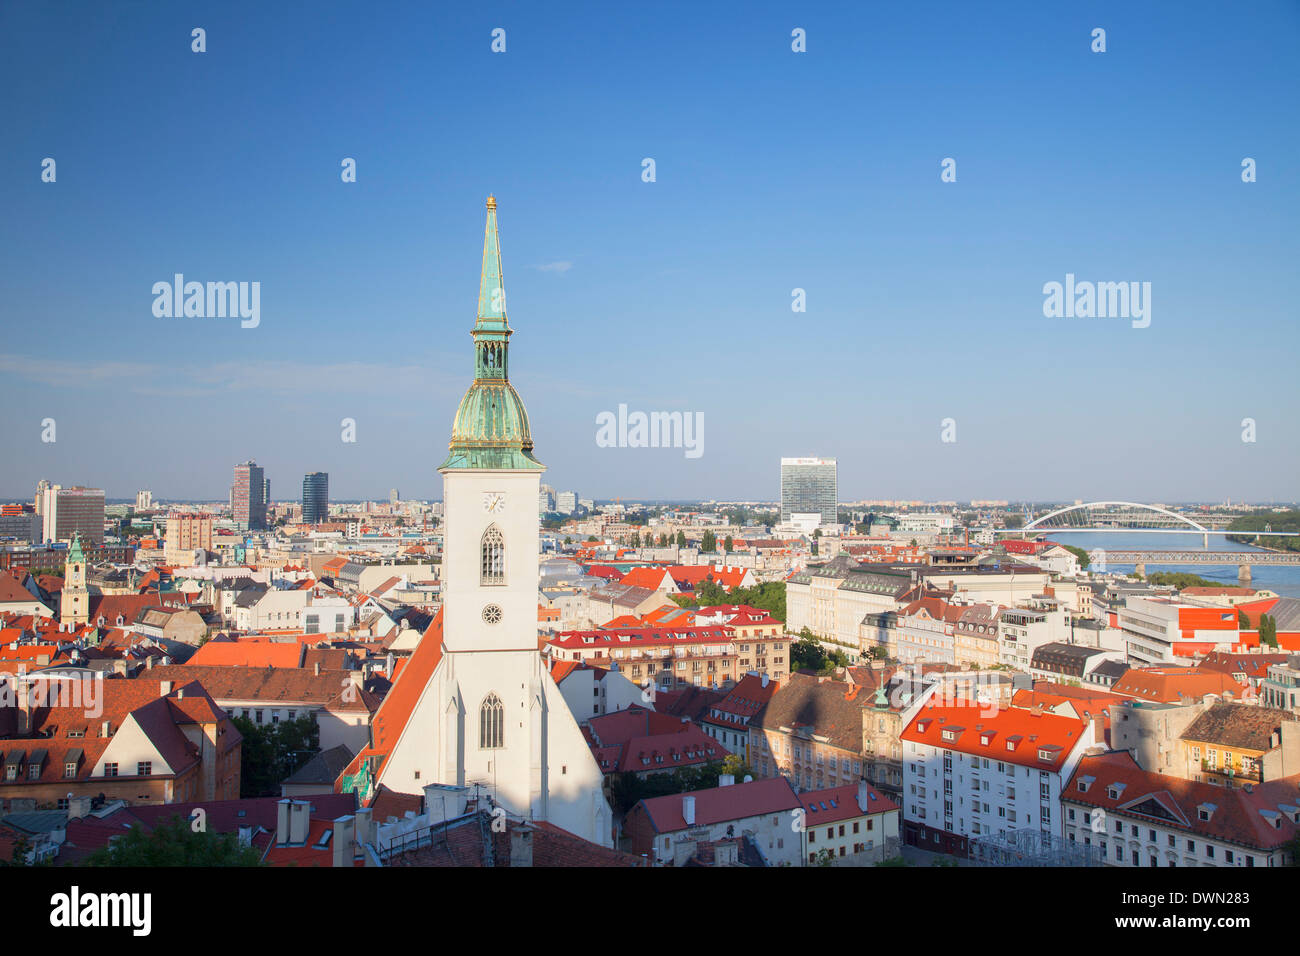 View of St. Martin's Cathedral and city skyline, Bratislava, Slovakia, Europe - Stock Image